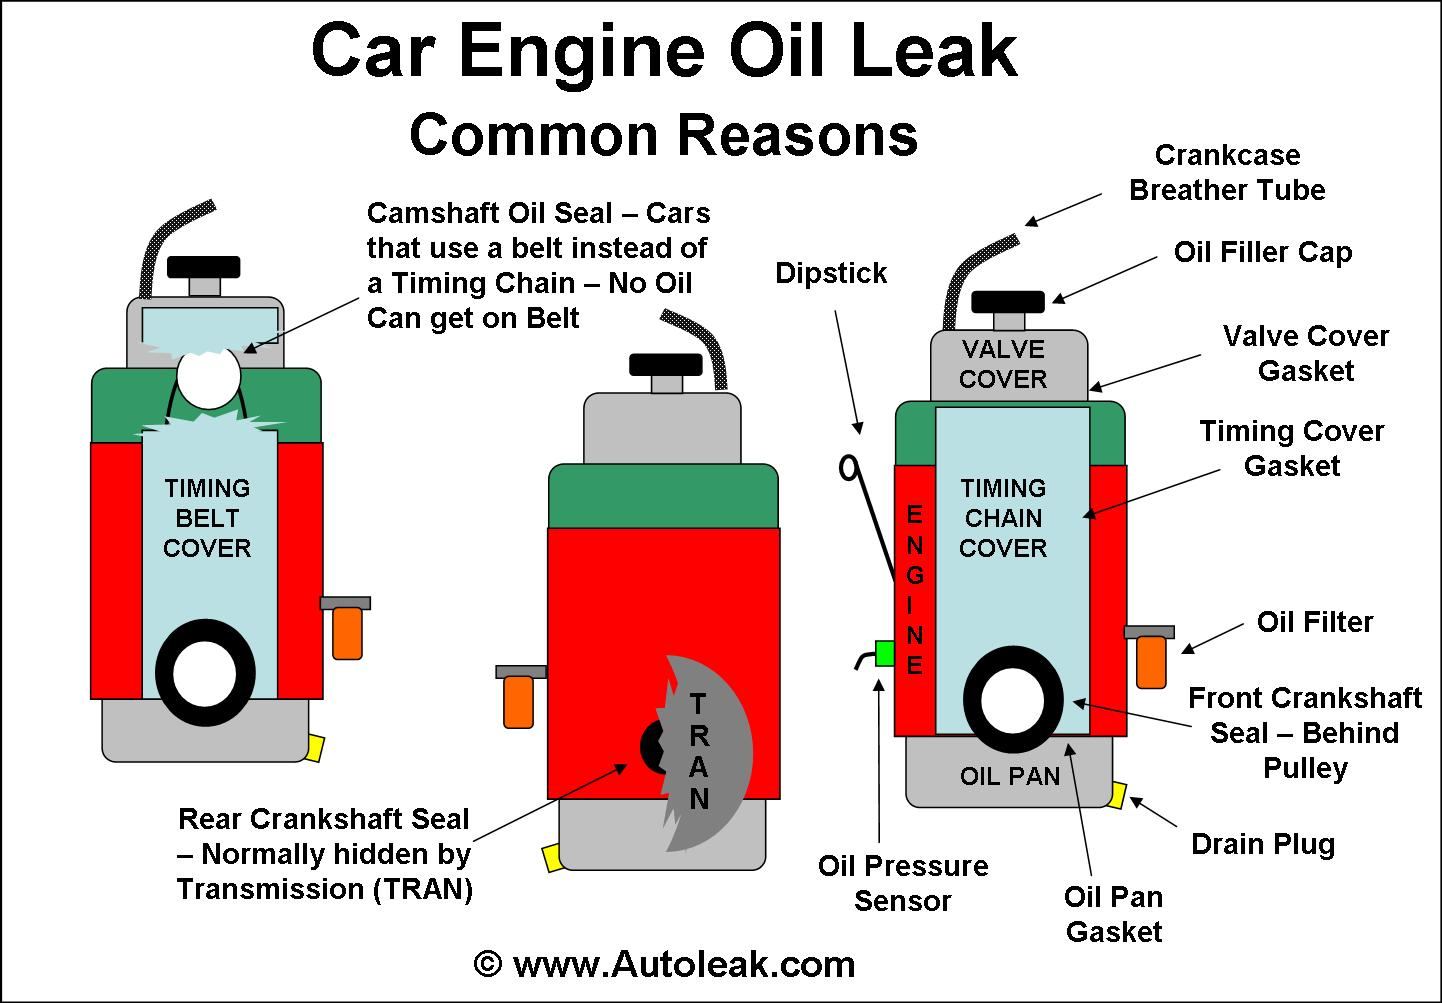 How To Fix Oil Leaks In Cars